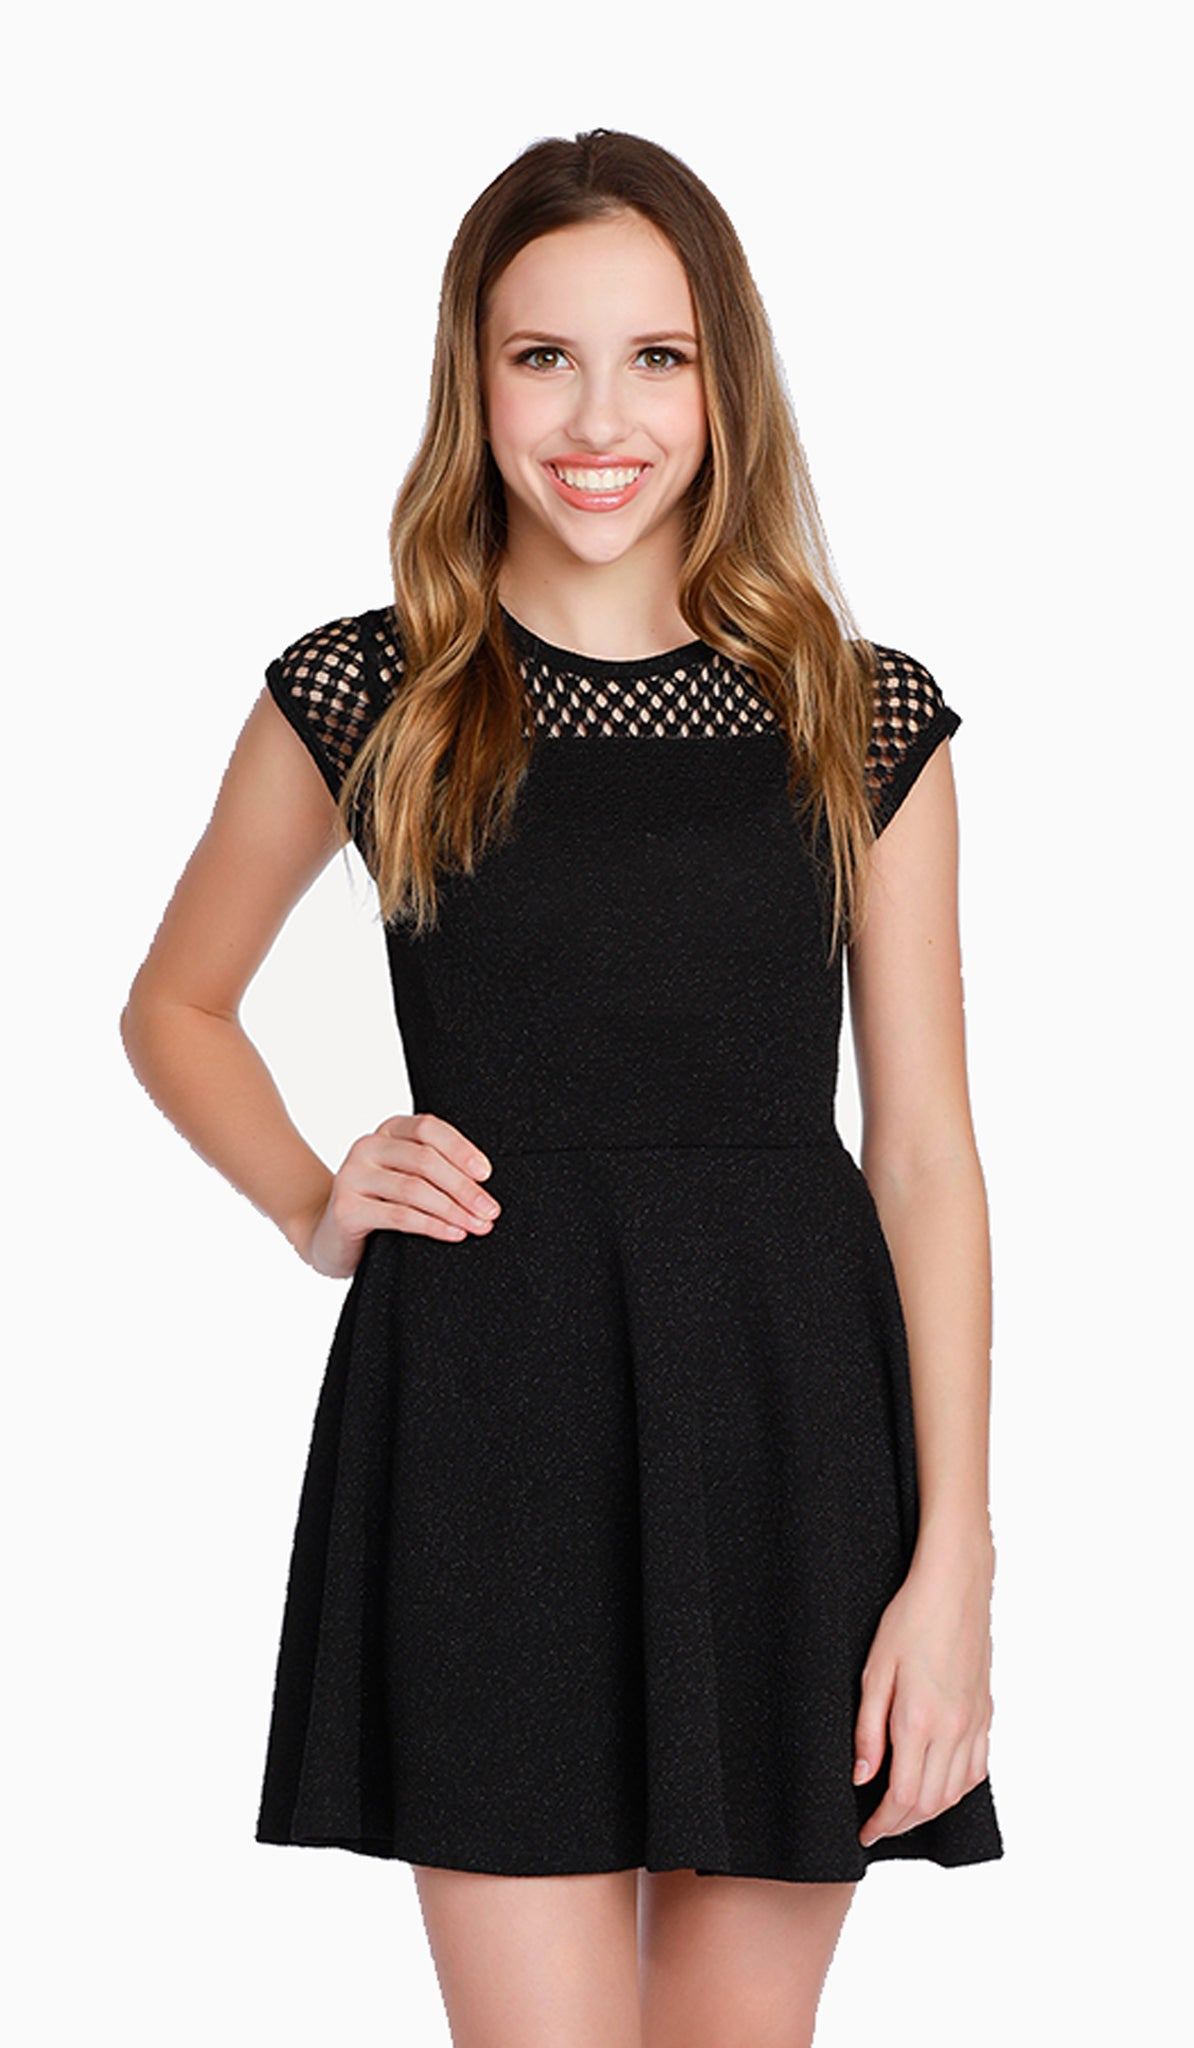 THE ZOEY DRESS - Sallymiller.com - [variant title] - | Event & Party Dresses for Tween Girls & Juniors | Weddings Dresses, Bat Mitzvah Dresses, Sweet Sixteen Dresses, Graduation Dresses, Birthday Party Dresses, Bar Mitzvah Dresses, Cotillion Dresses